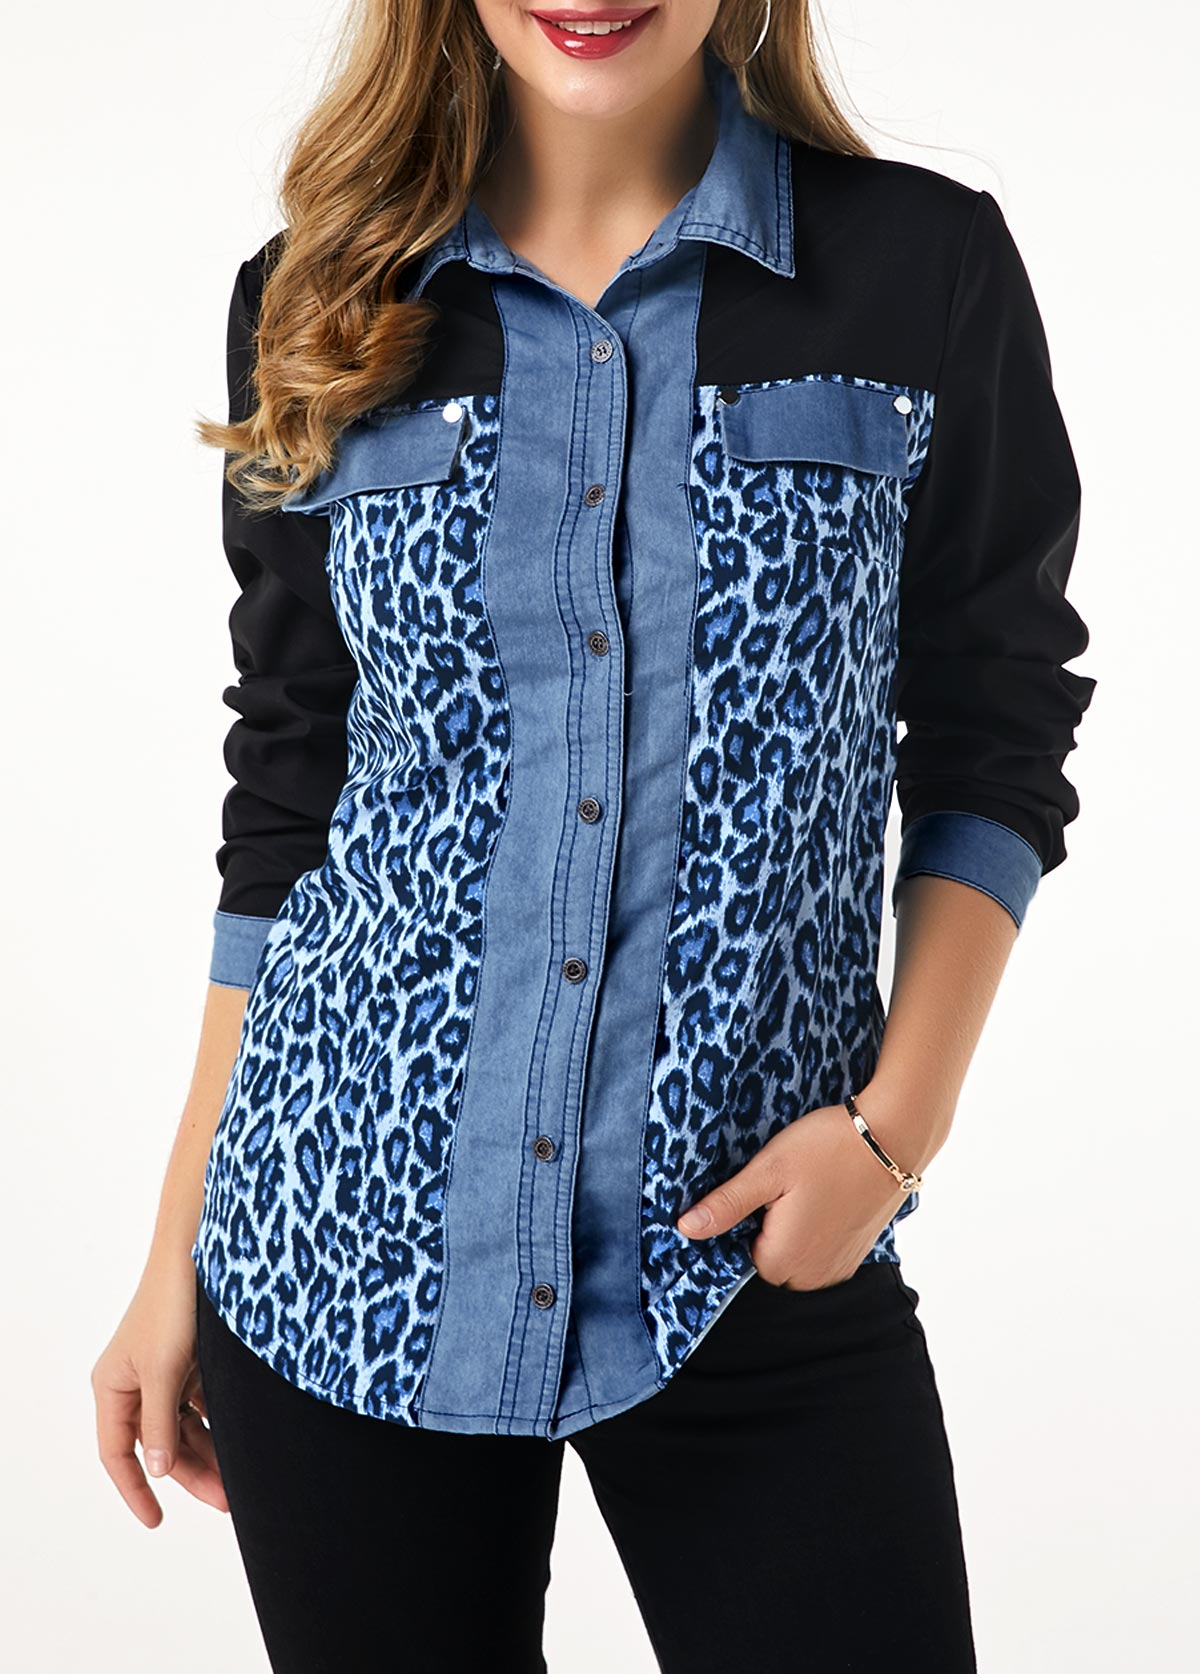 Leopard Print Denim Panel Button Up Shirt